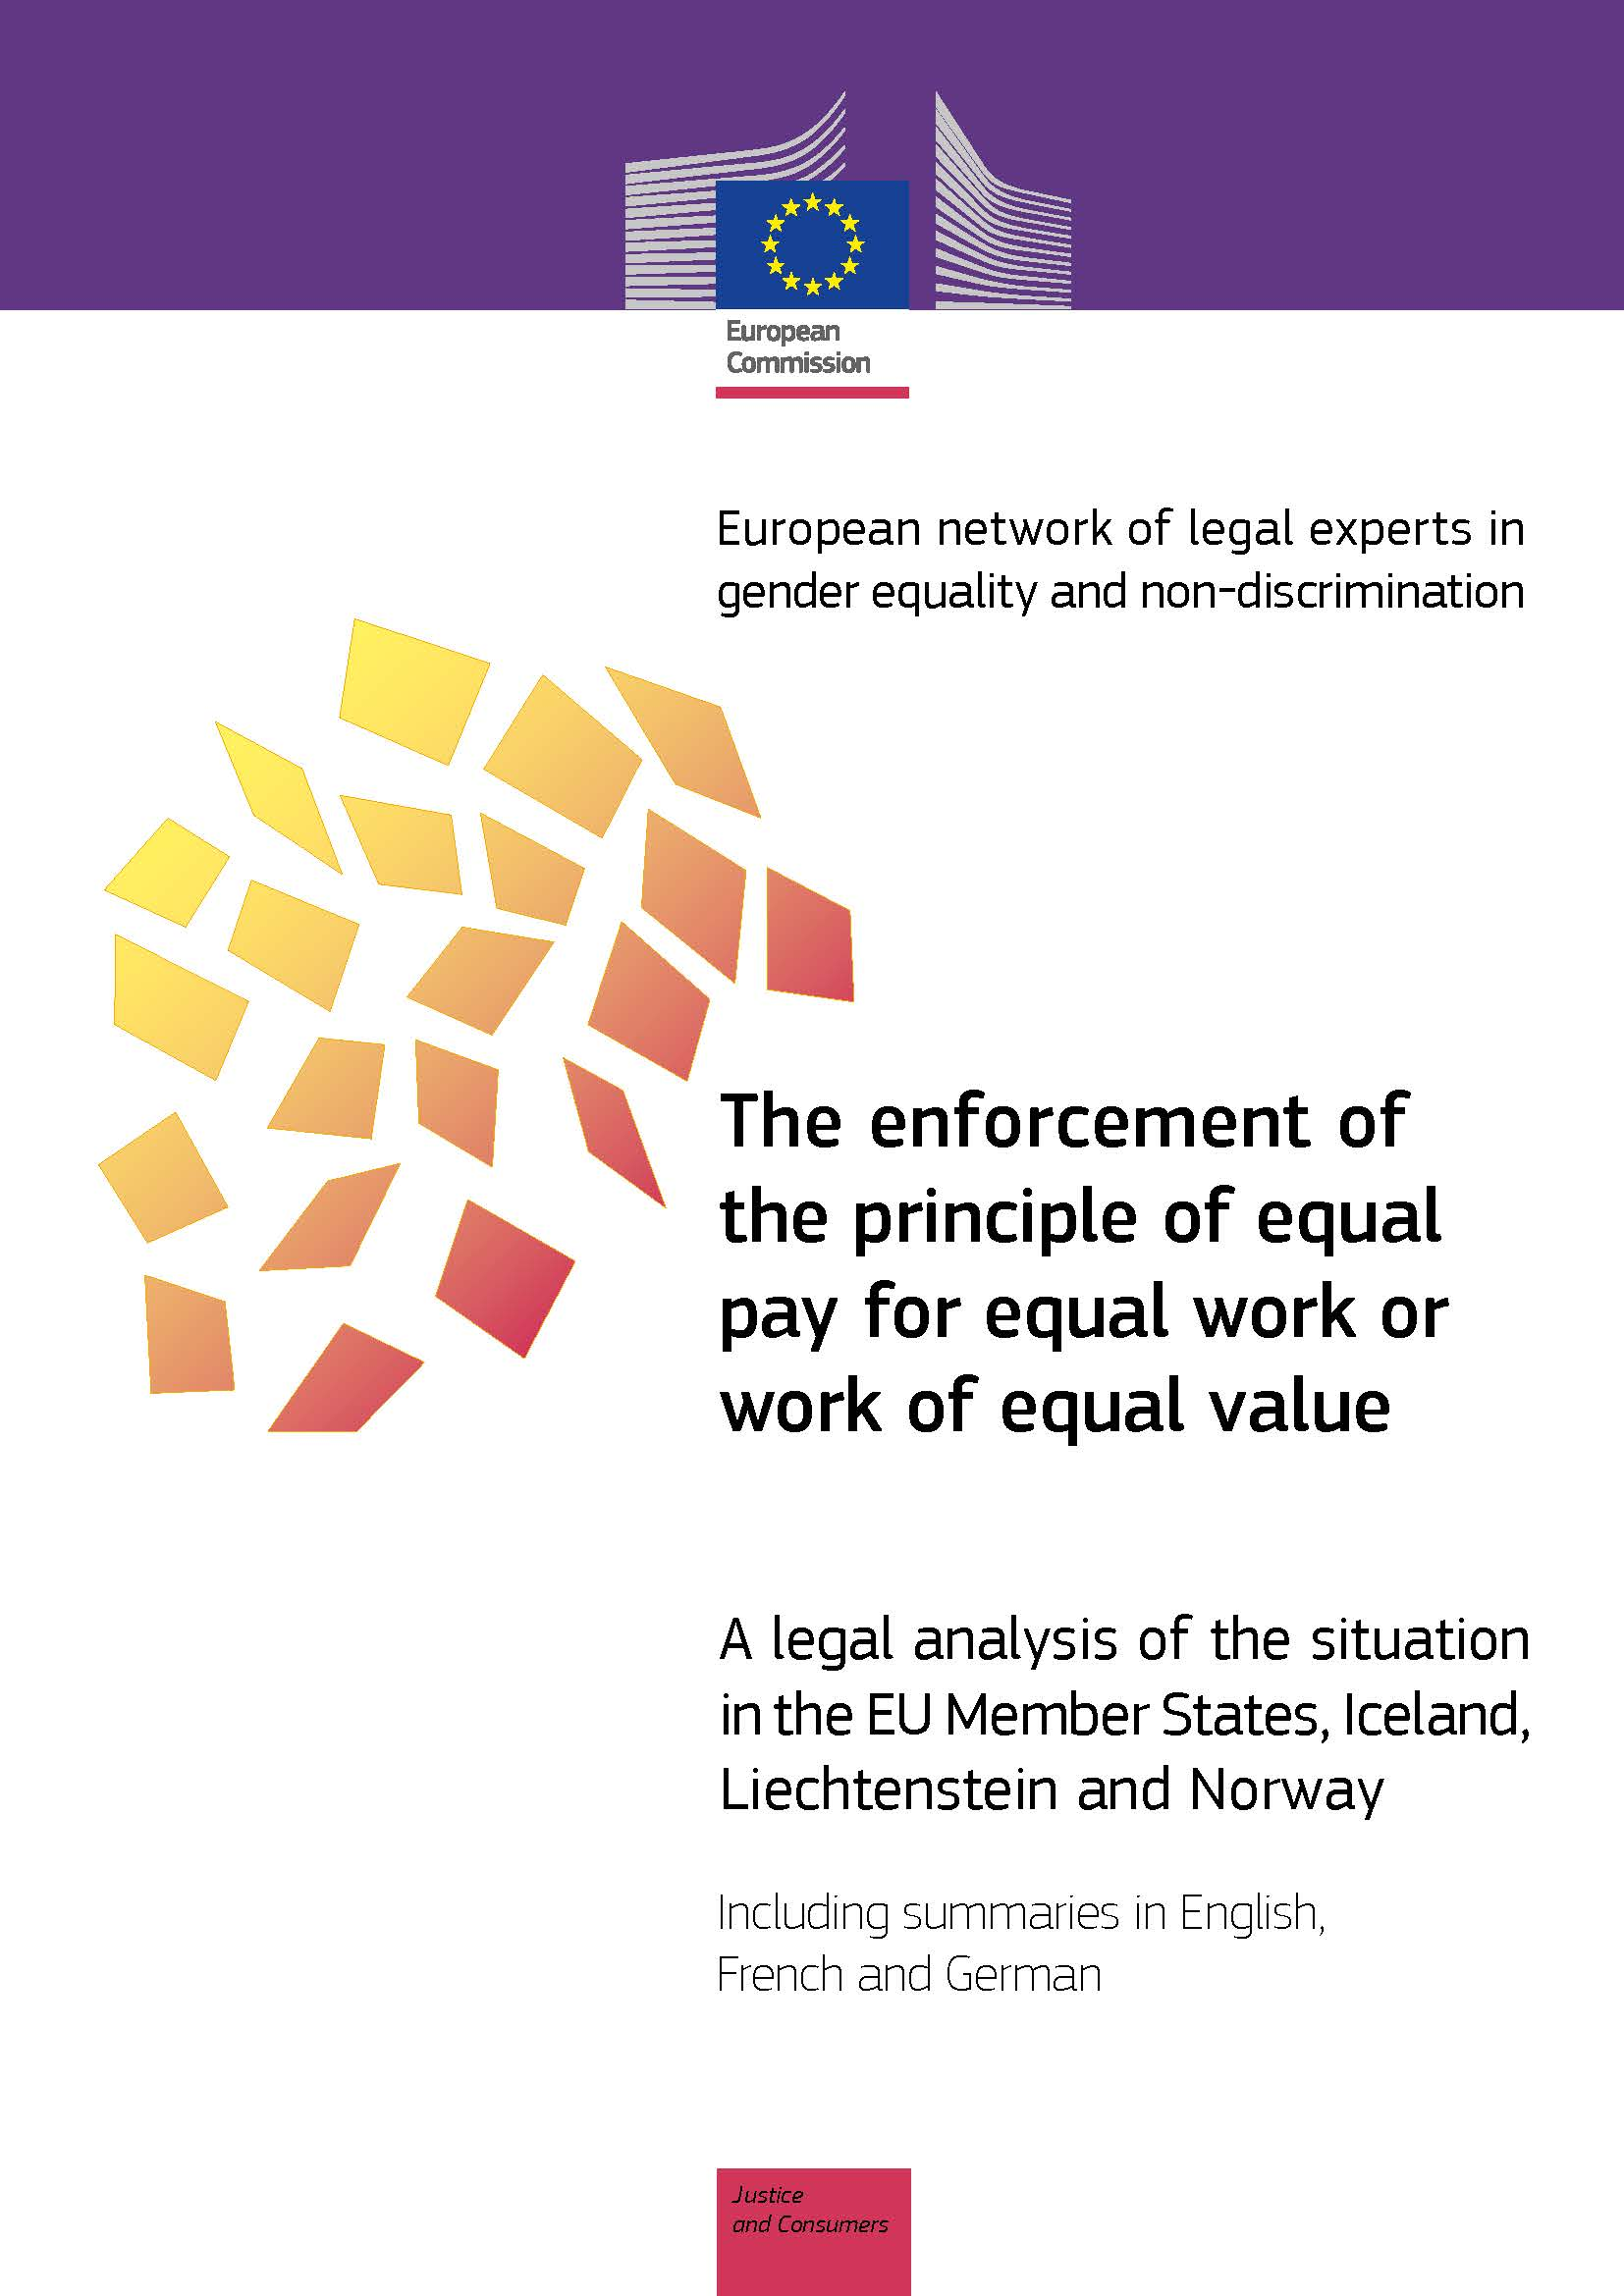 The enforcement of the principle of equal pay for equal work or work of equal value (PDF 840 kB)